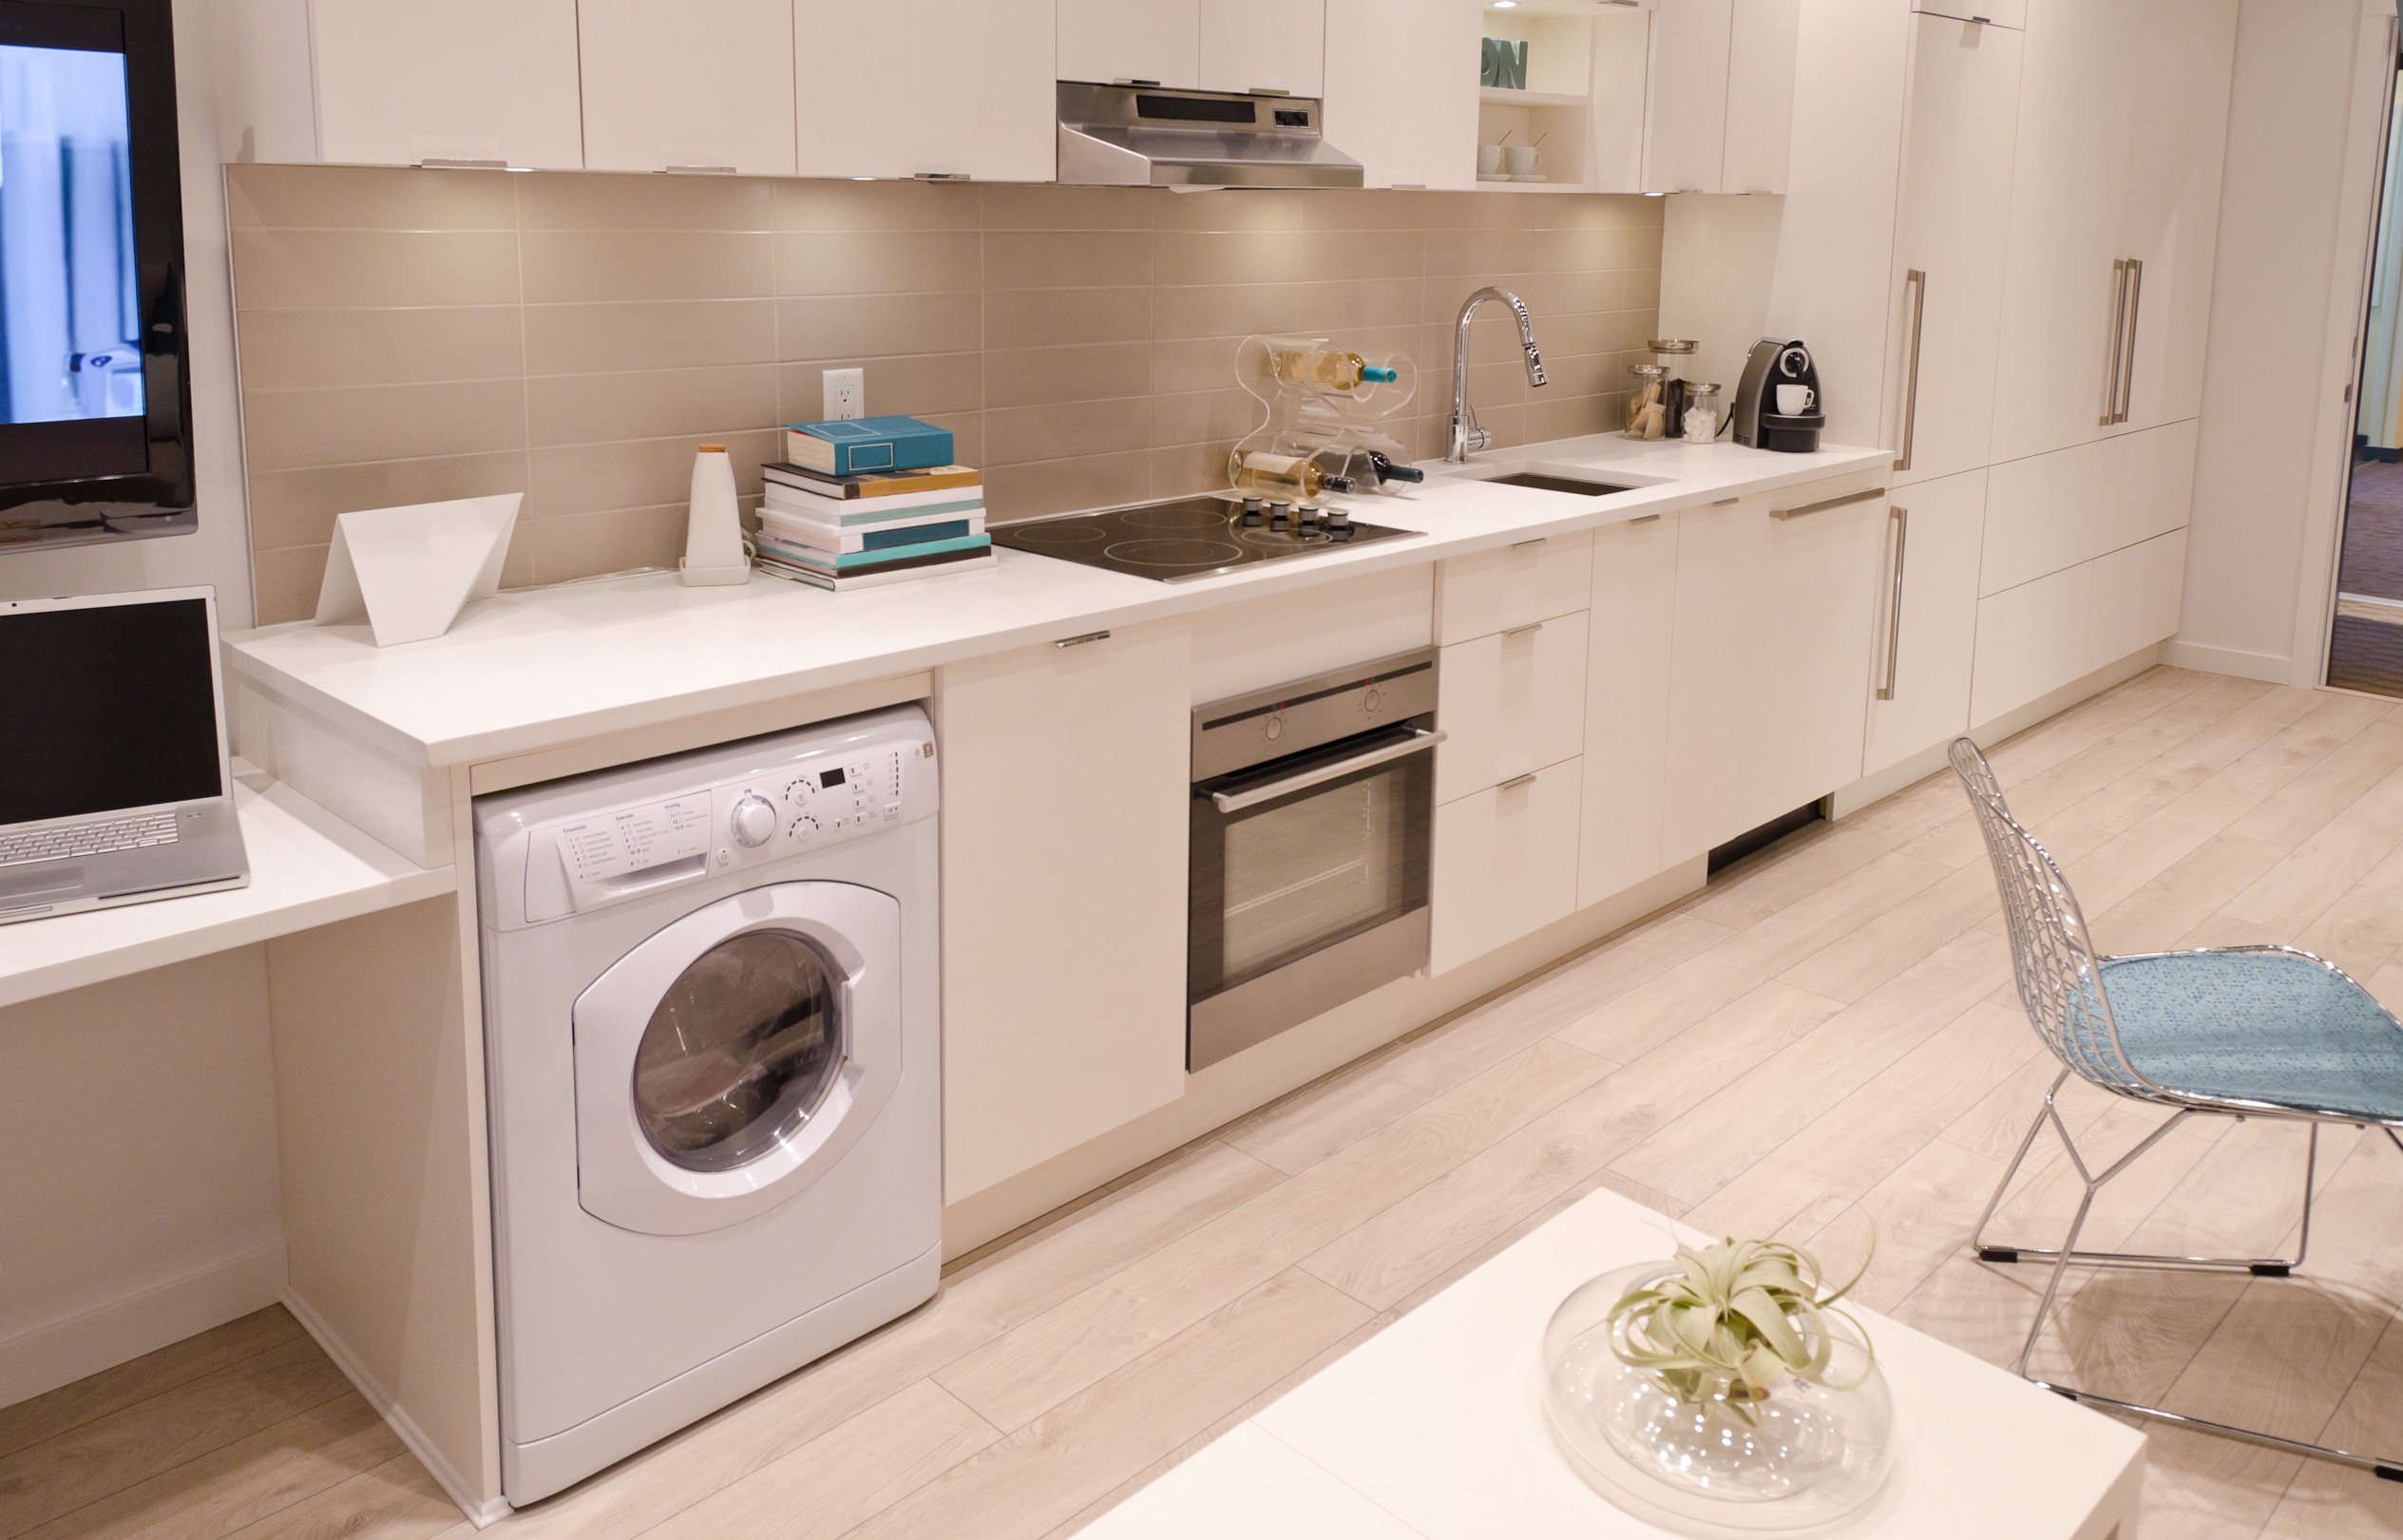 laundry room in kitchen ideas lafis an 225 lise setorial e informa 231 245 es do mercado financeiro 25015